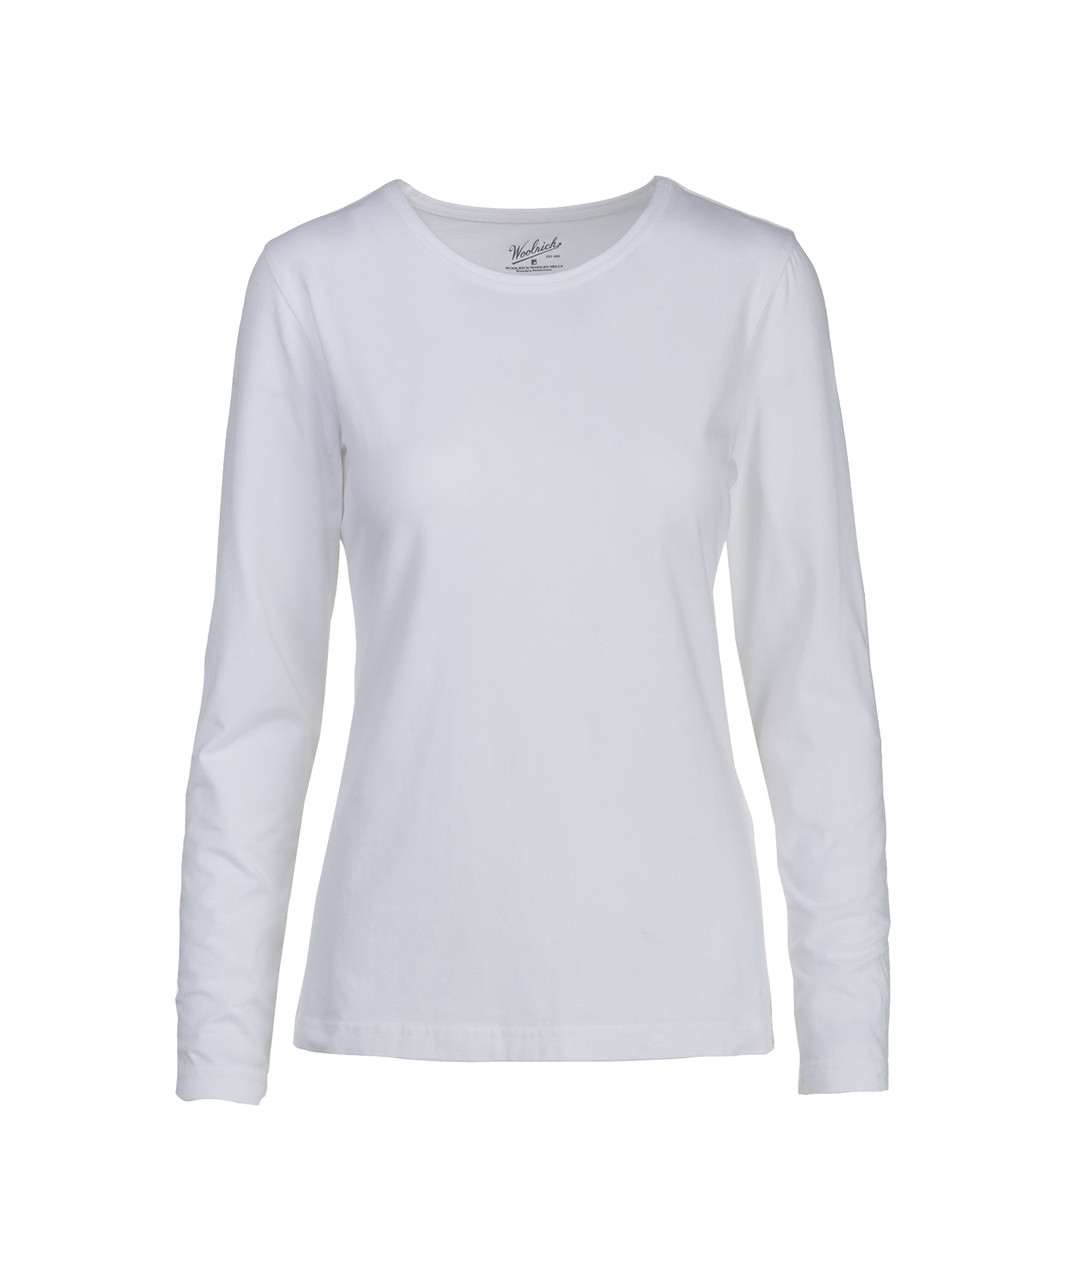 07a8edae8f8 Women s Laureldale Long Sleeve T-Shirt. 7003 model WHITE